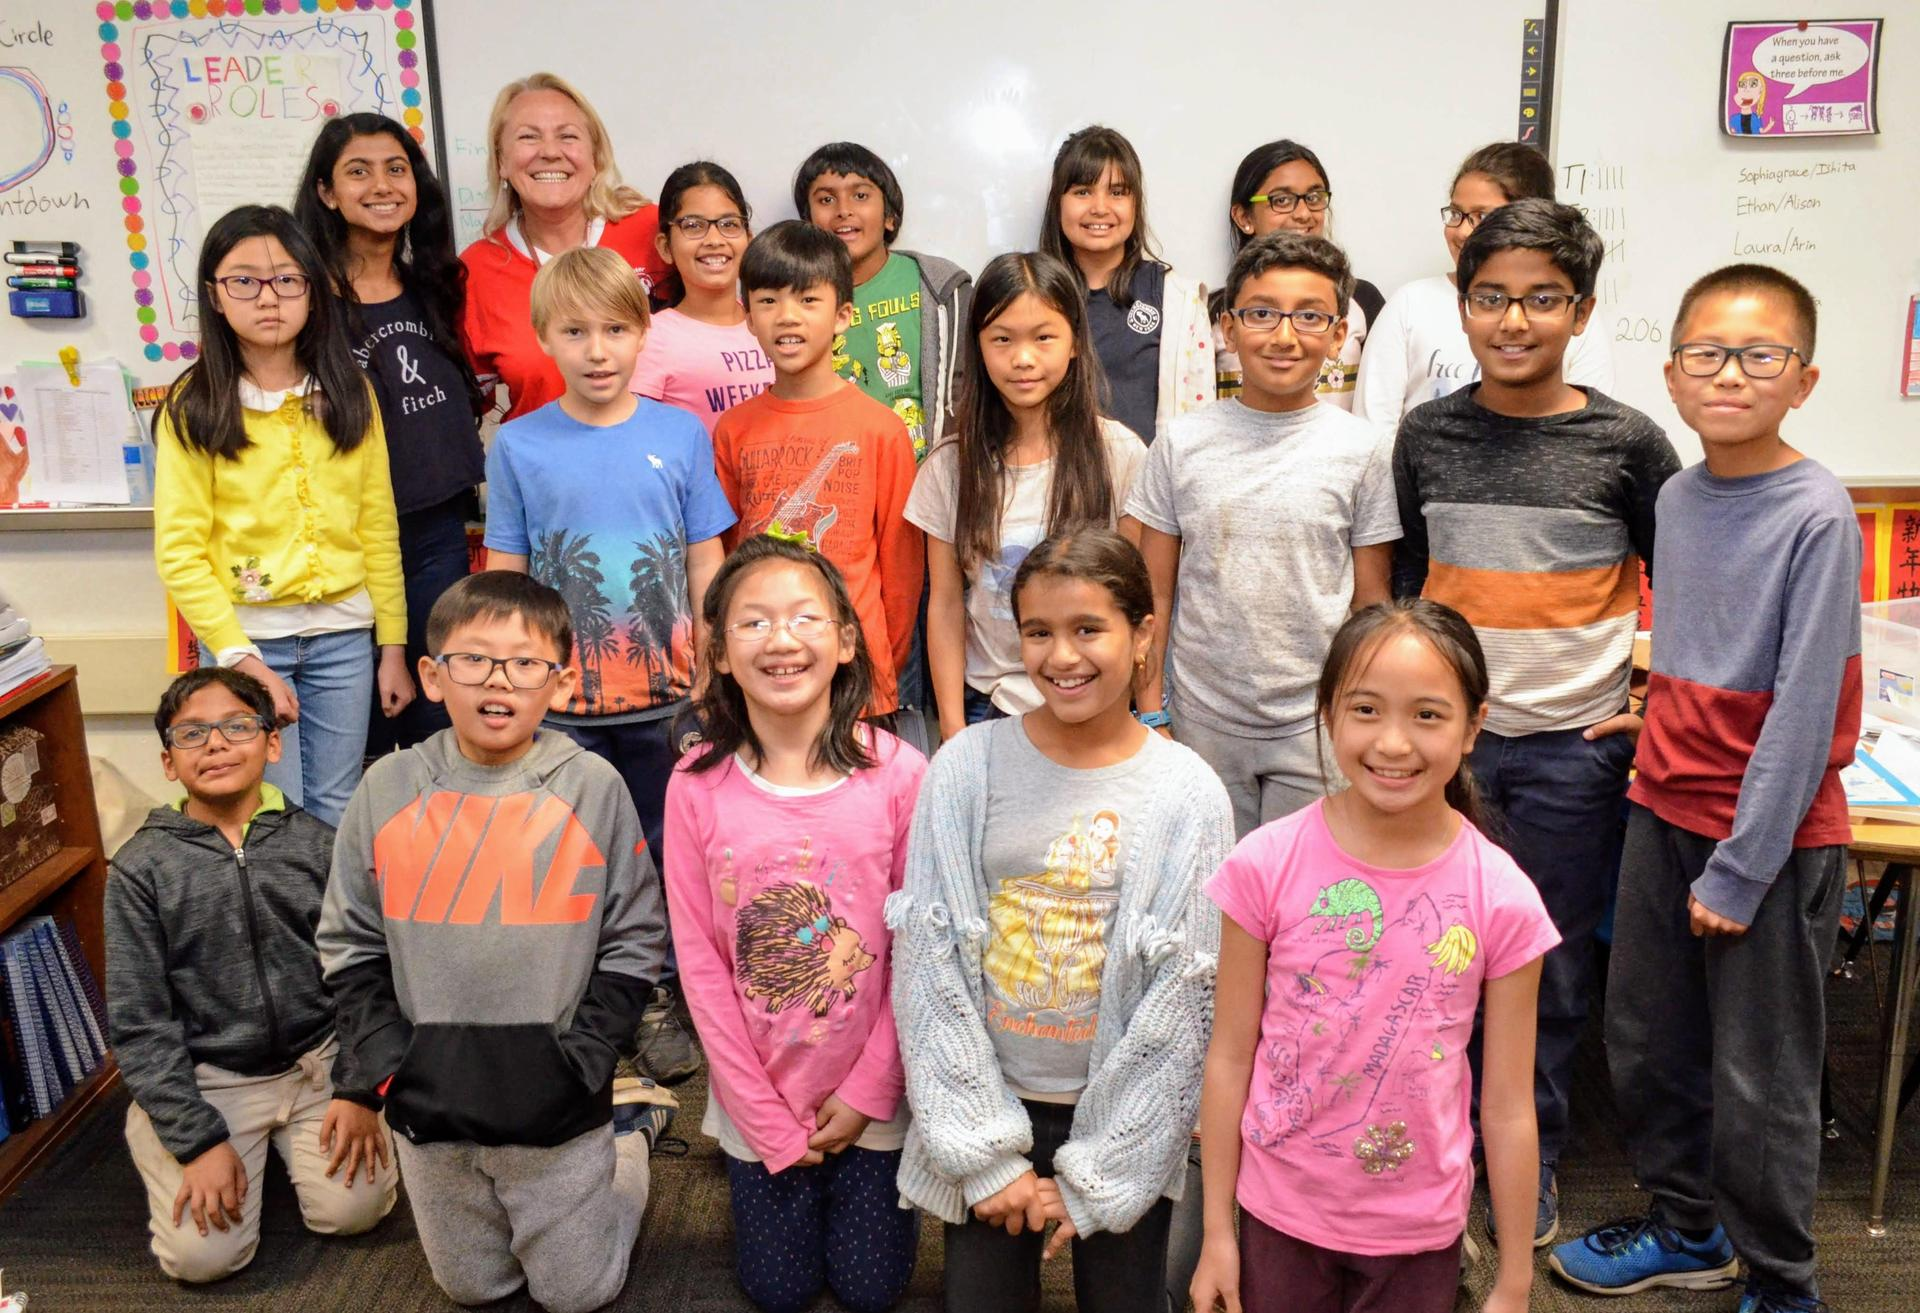 Arcadia High junior Aditee Prabhutendolkar (second from the left standing) with her Baldwin Stocker Elementary Math Circle group.